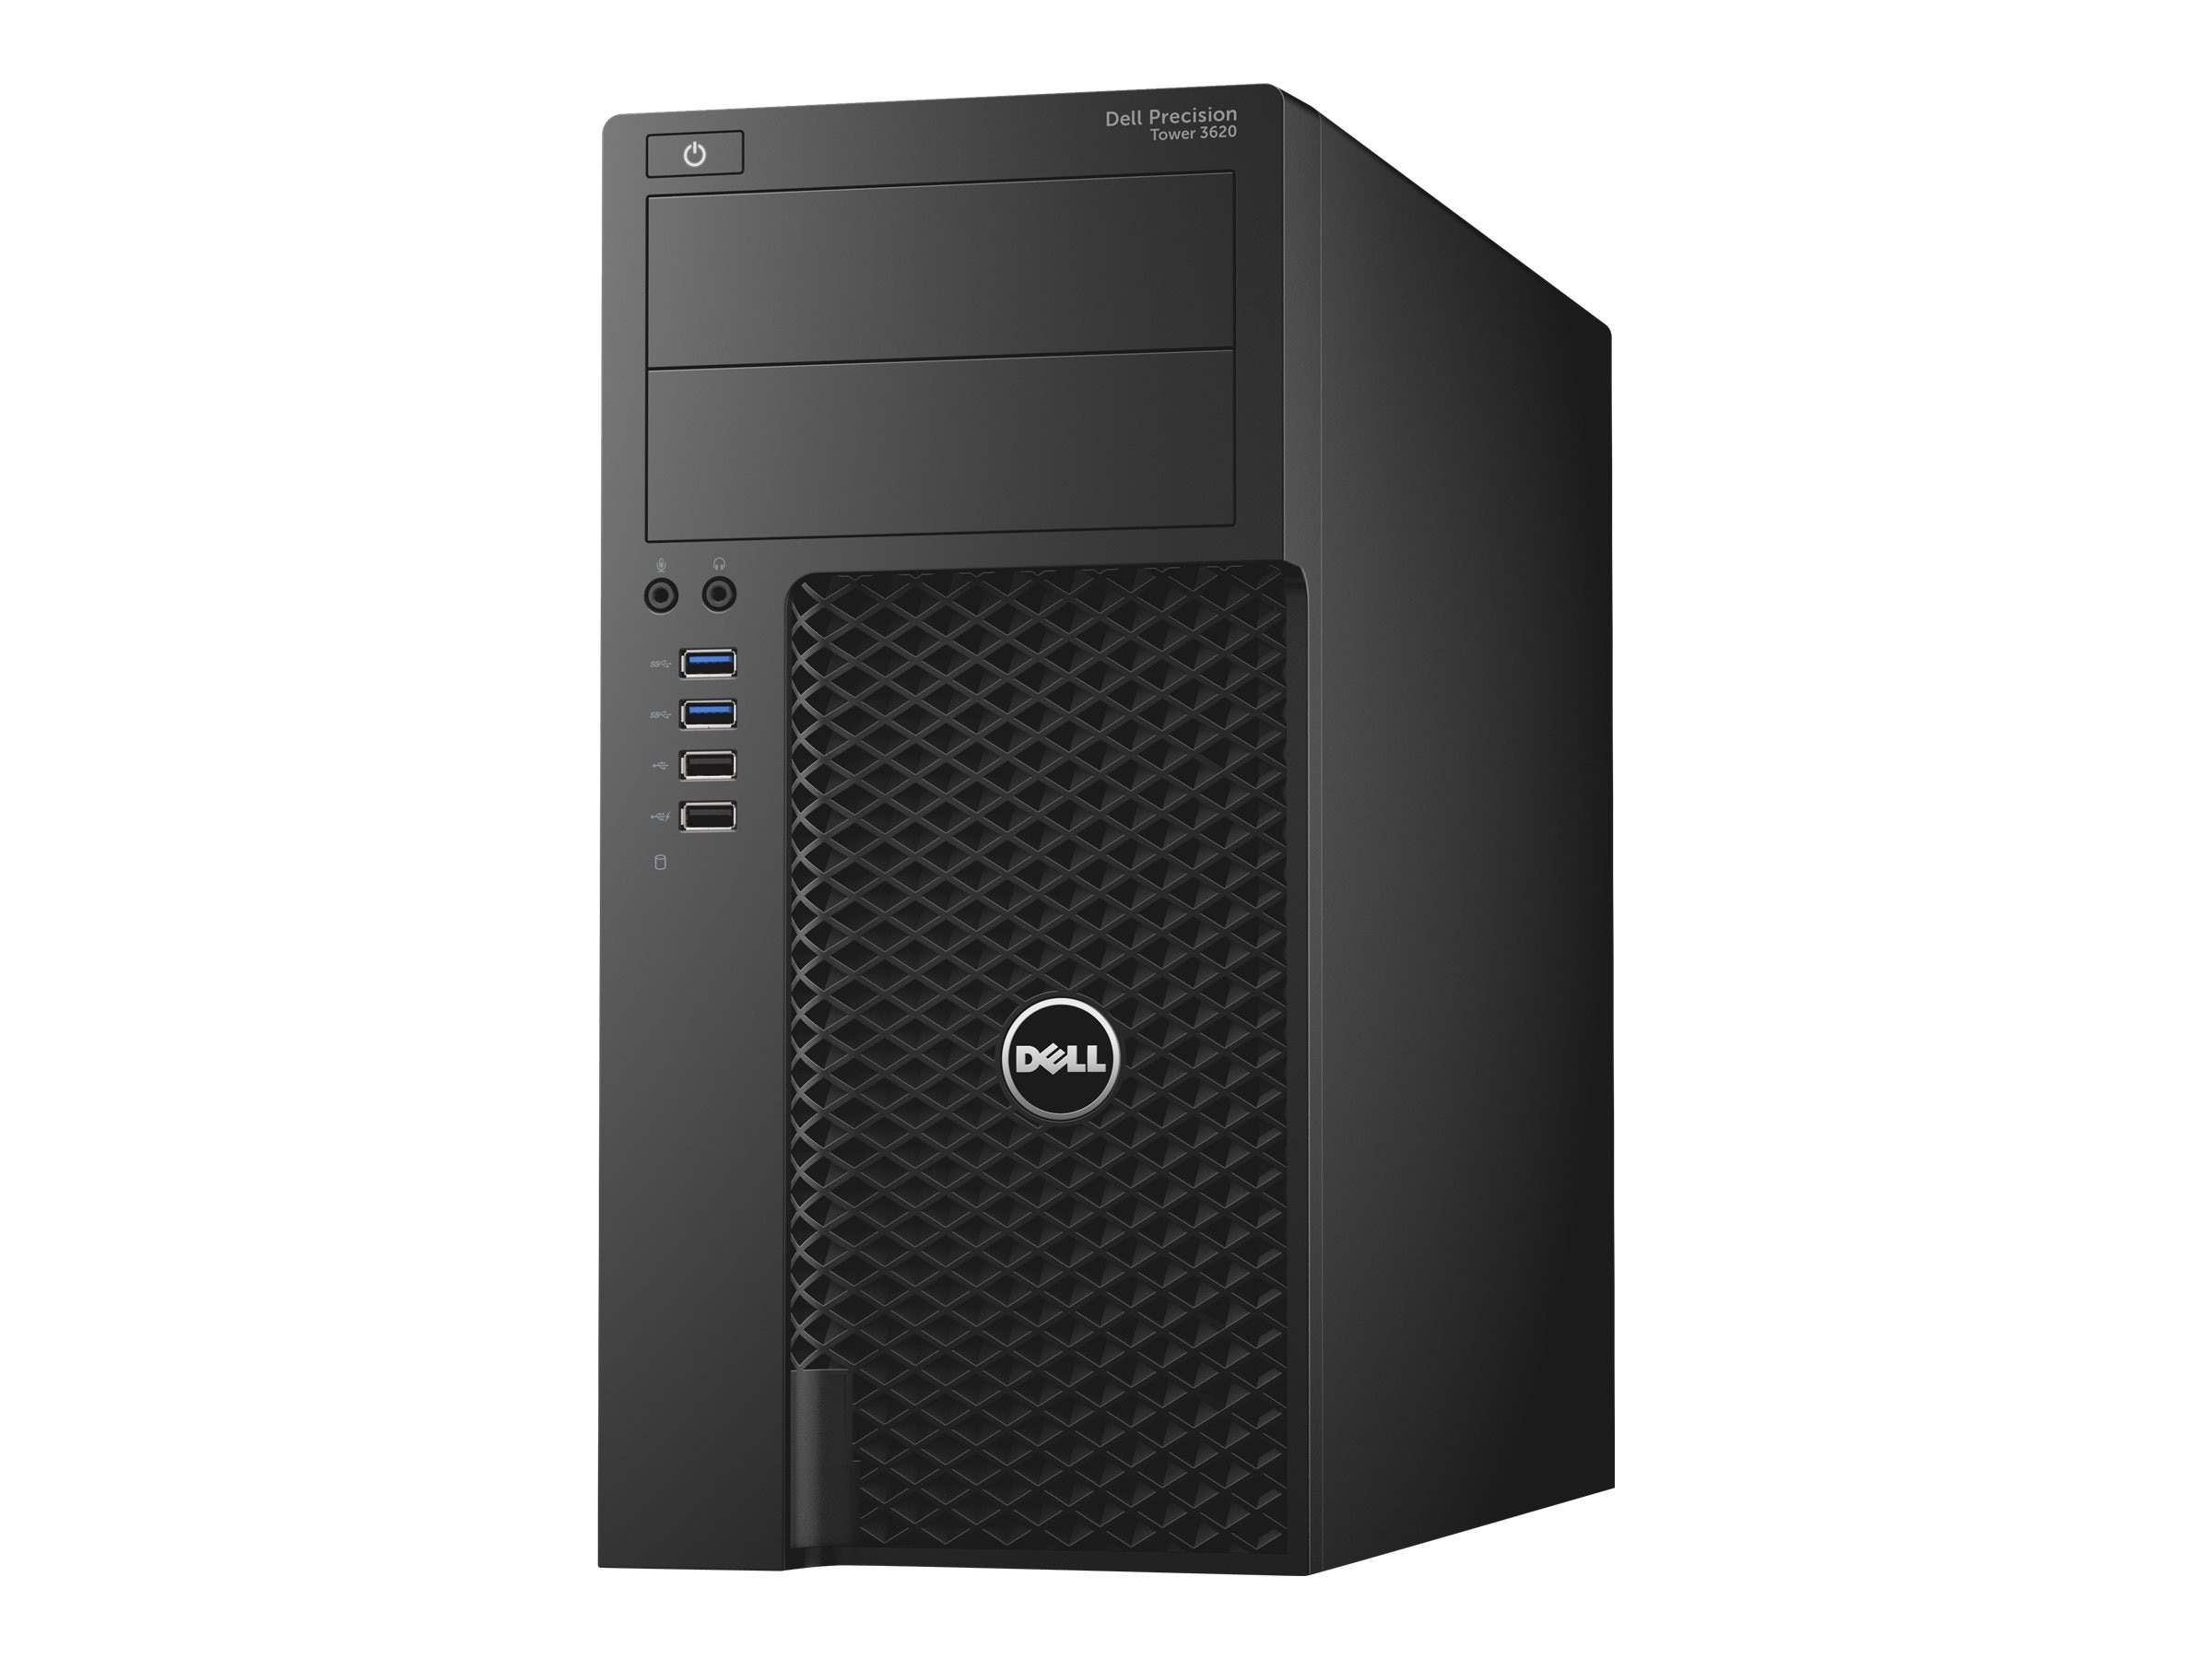 Dell Precision 3620 MT Core i7-6700 3.4GHz 8GB 1TB HD530 DVD-ROM GbE W7P64-W10P, GJD8G, 31867096, Workstations